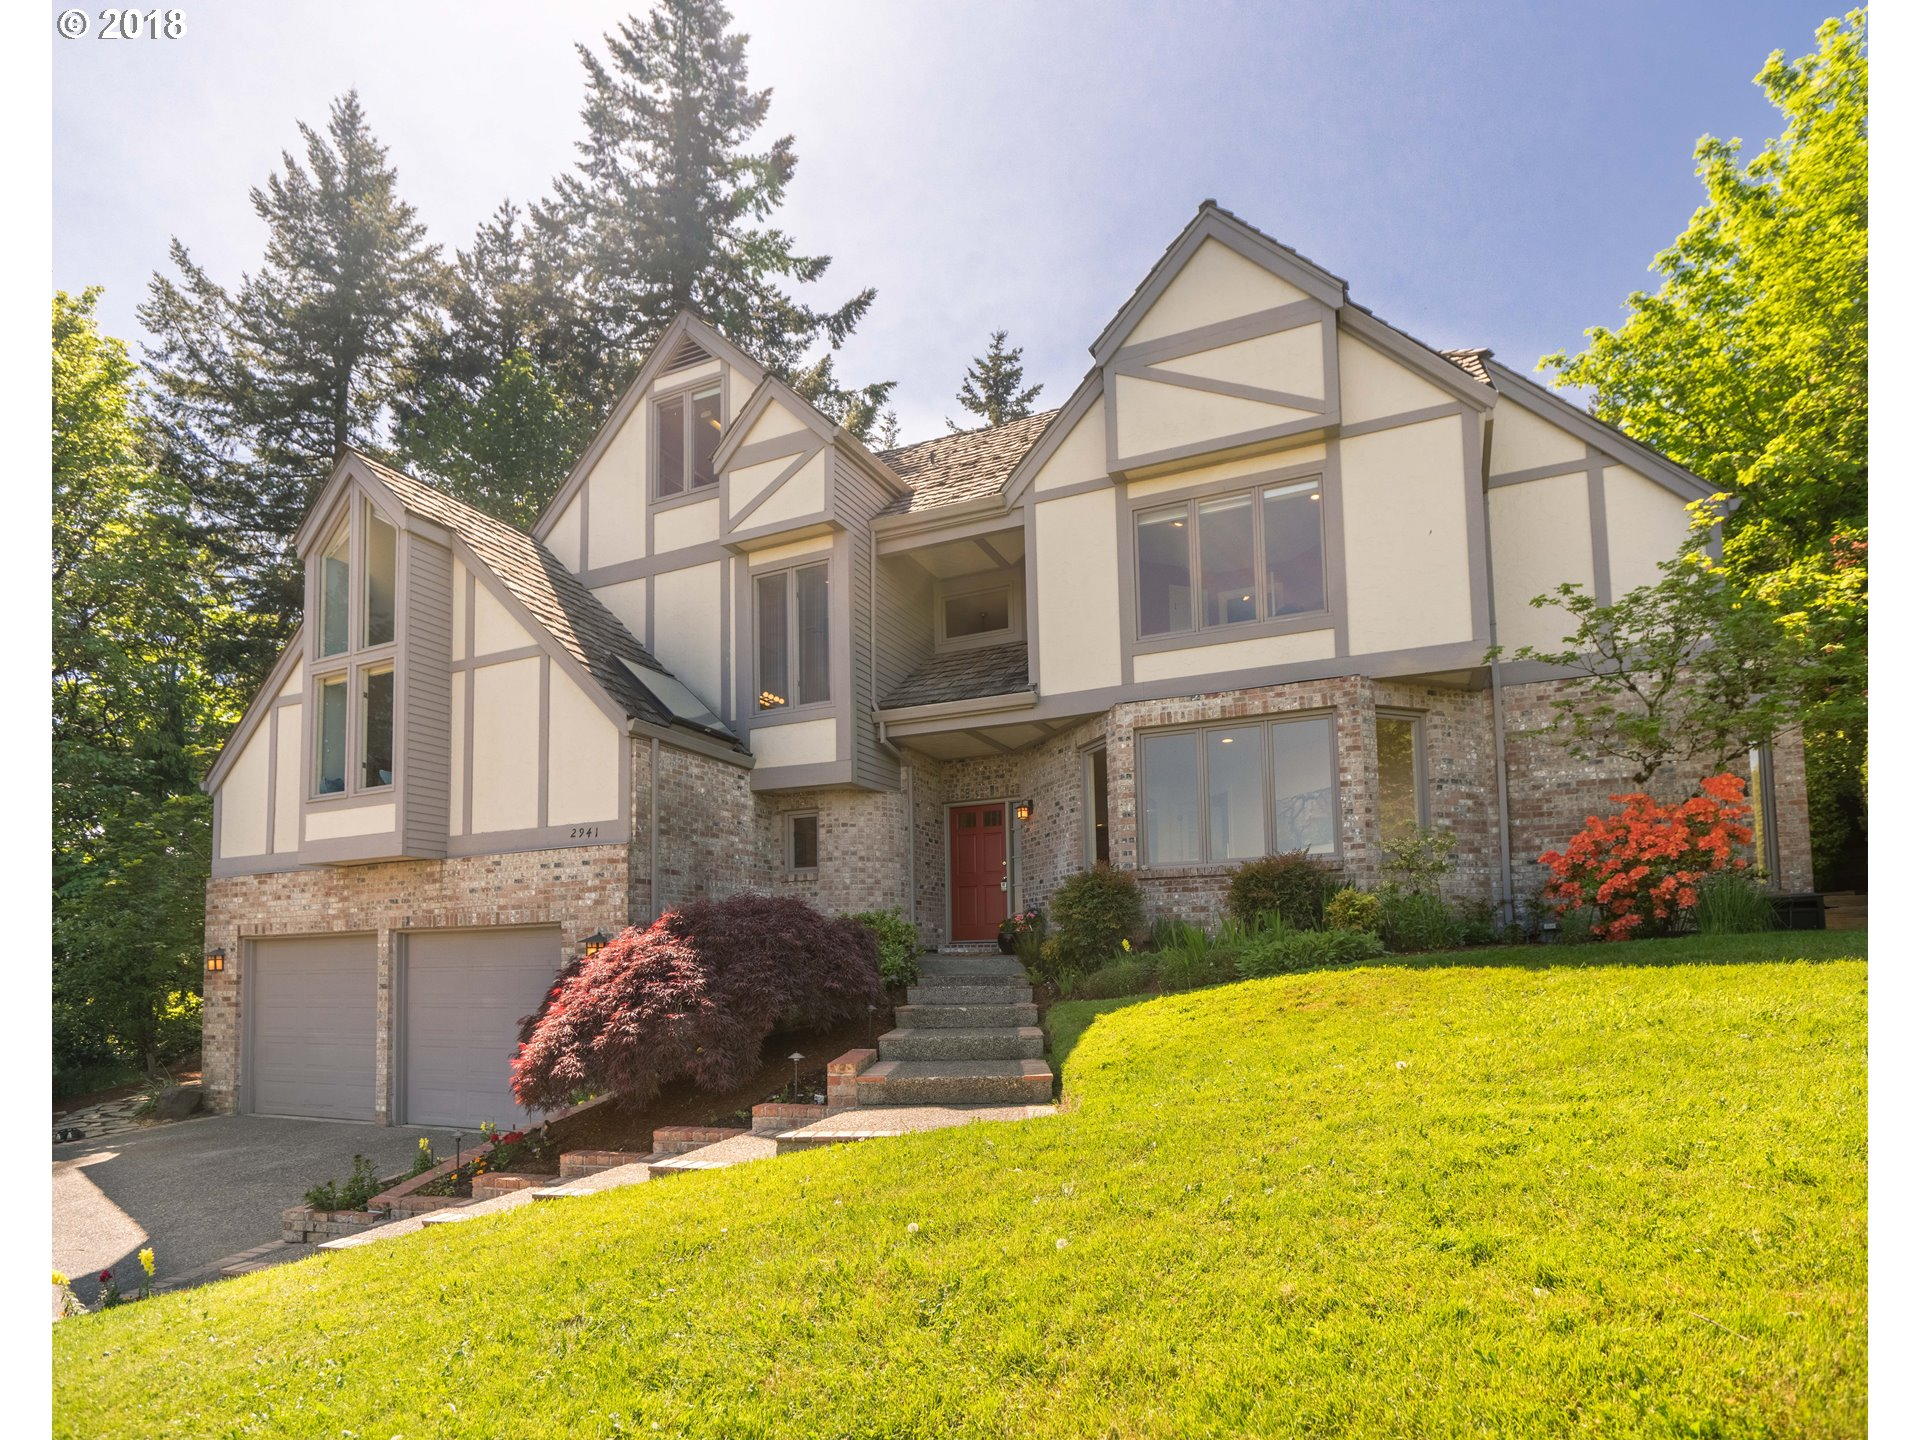 2941 ORCHARD HILL PL, Lake Oswego, OR 97035